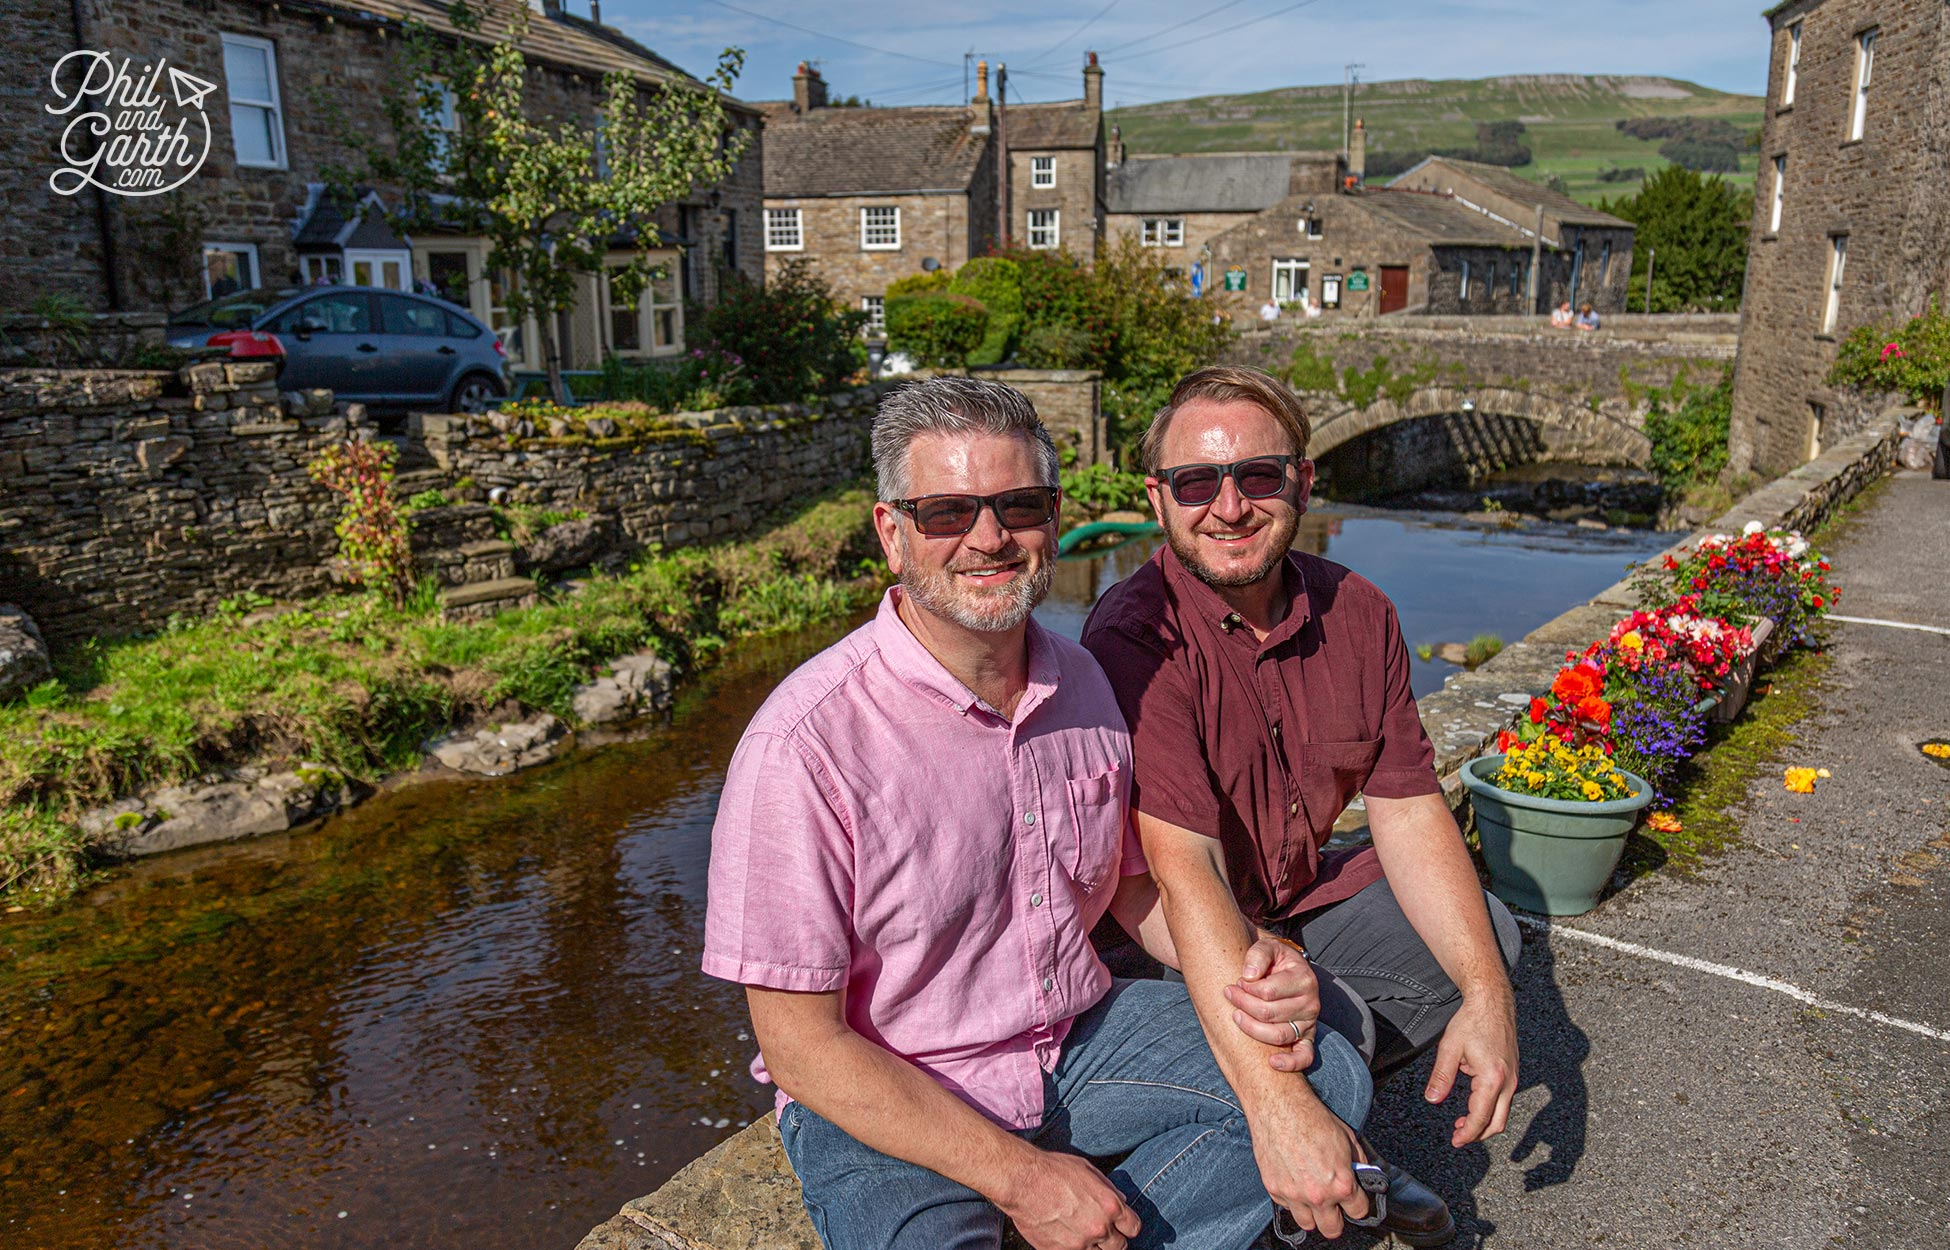 Phil and Garth in Hawes, Wensleydale